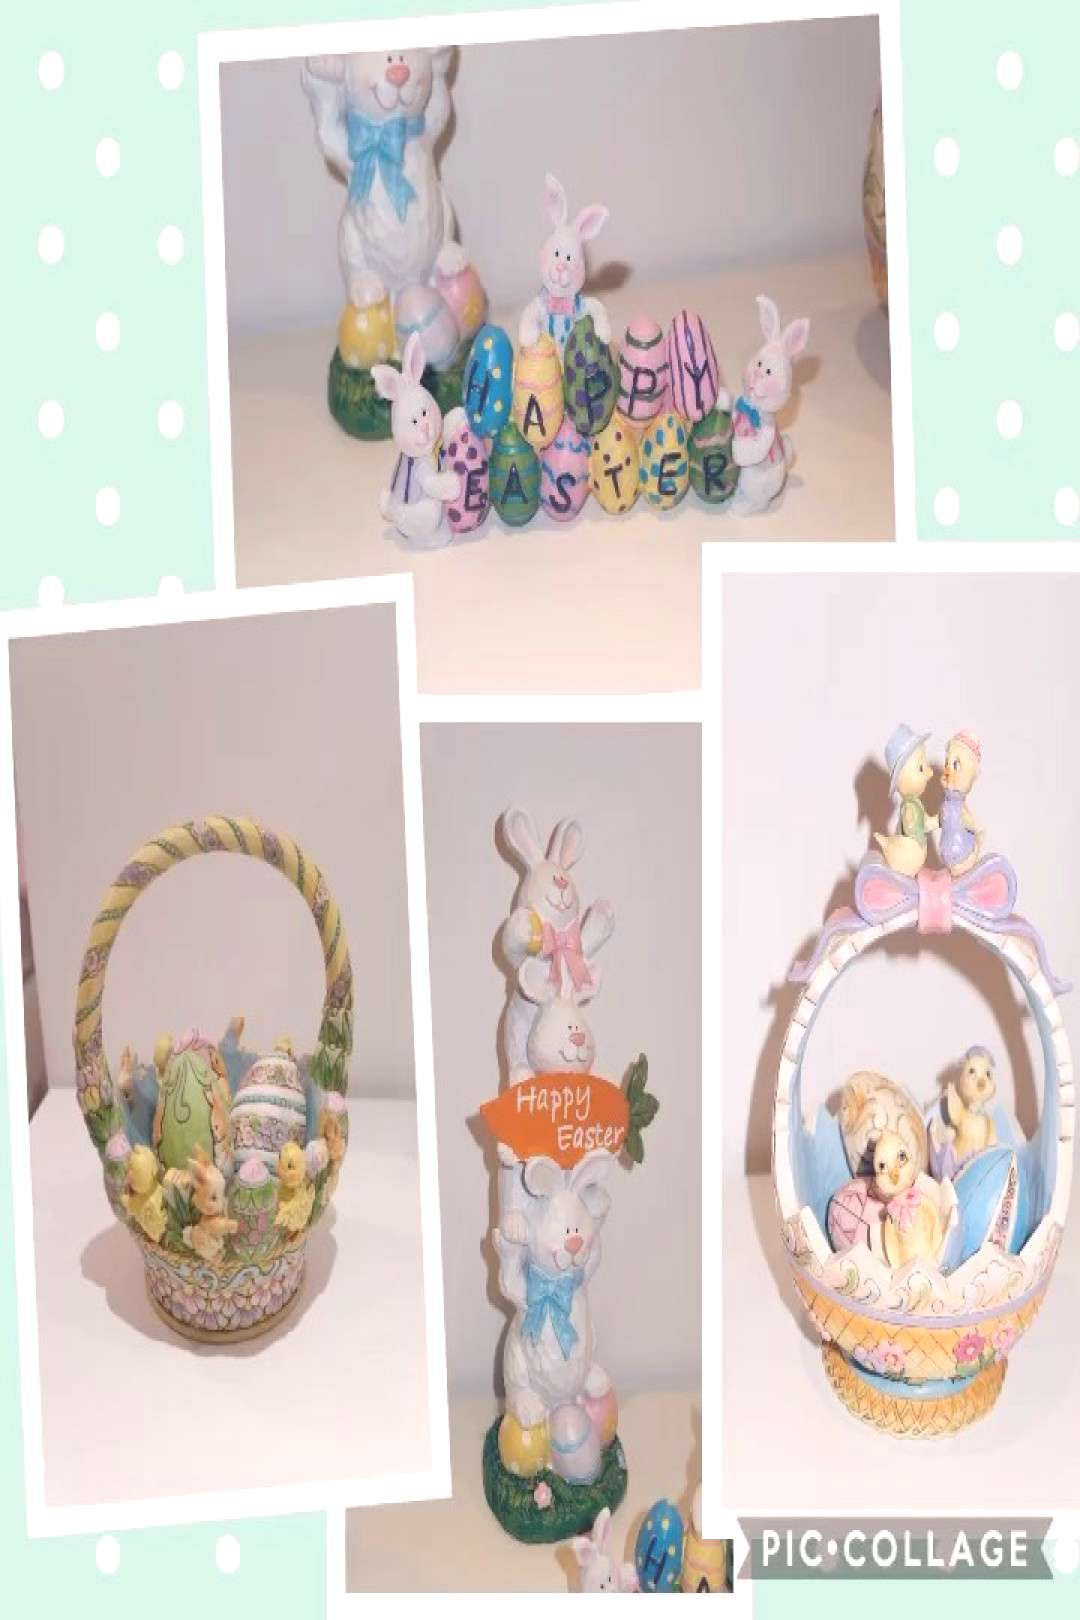 Easter mood#easter#easterdecor#easterbasket#easterbunny#easteregg